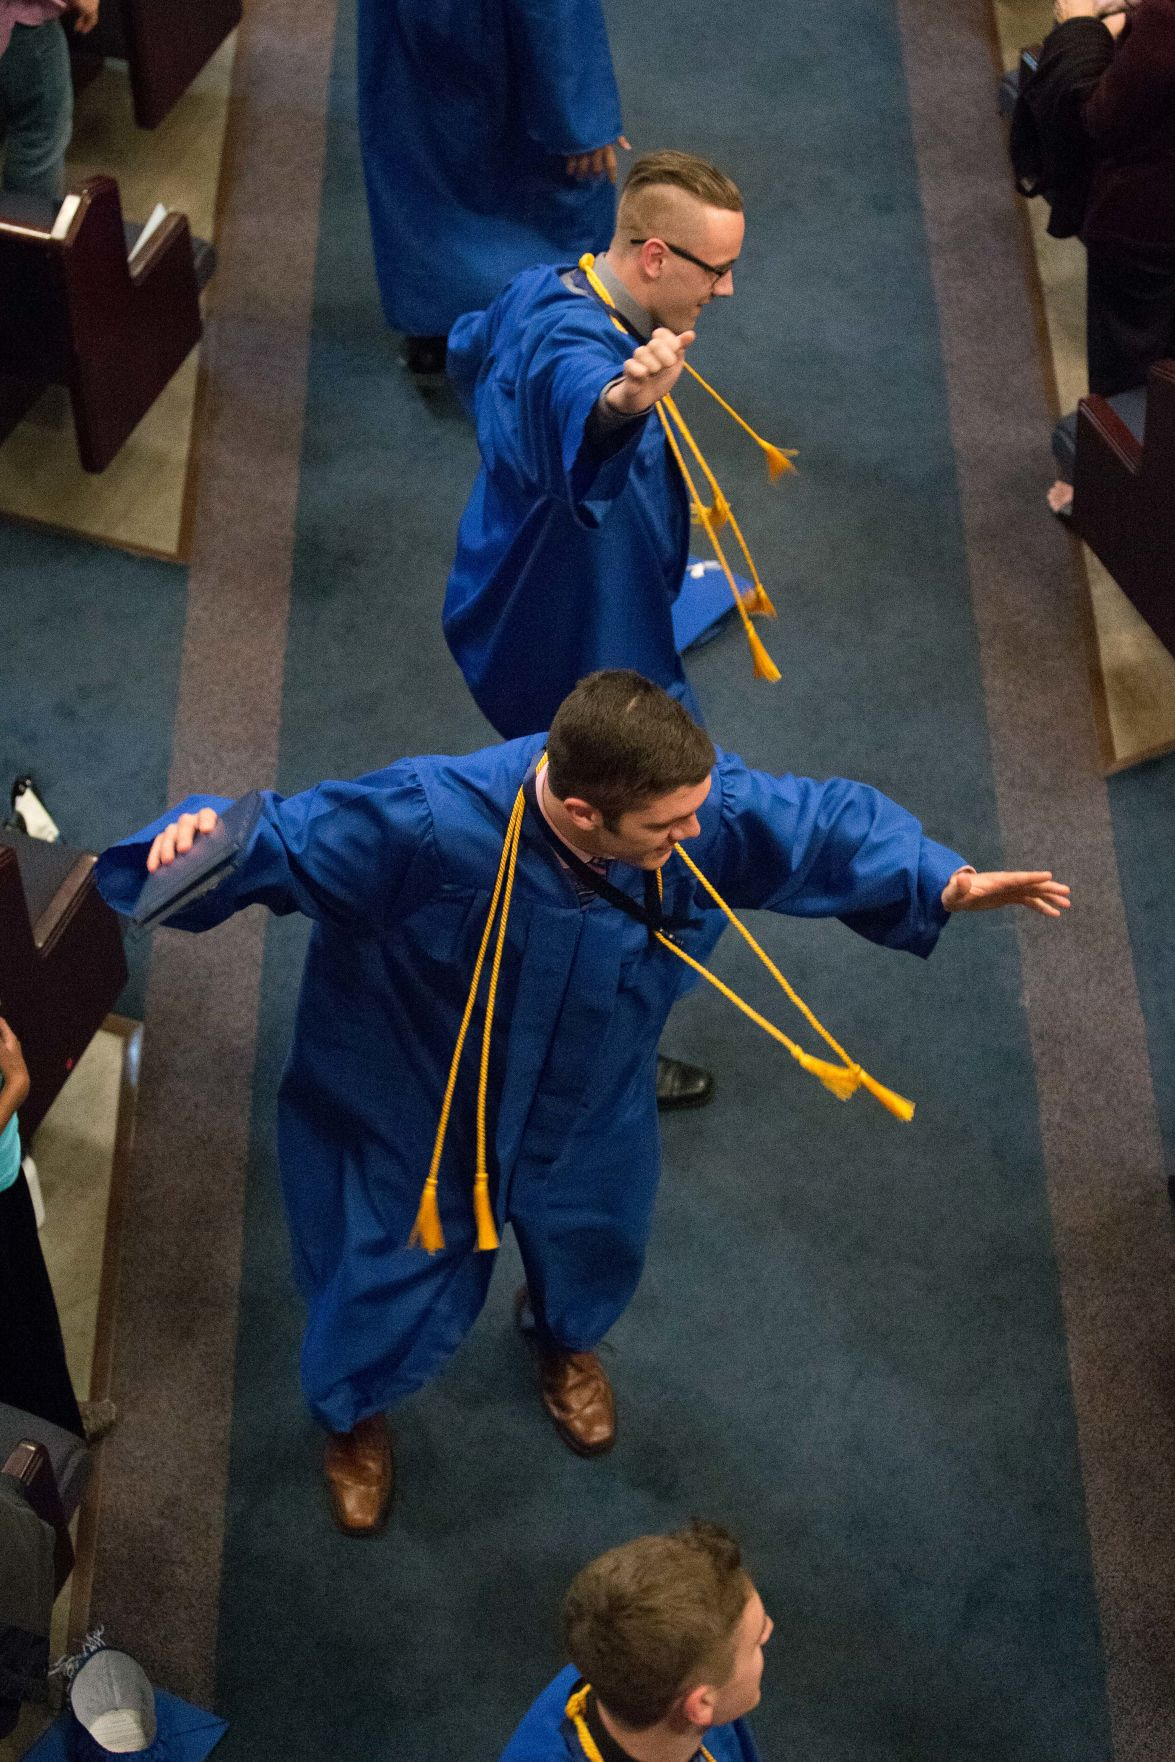 Graduation exercises for Evangelical Christian Academy were held on Friday, May 22, 2015 at Village Seven Presbyterian Church. Photo by Isaiah J. Downing